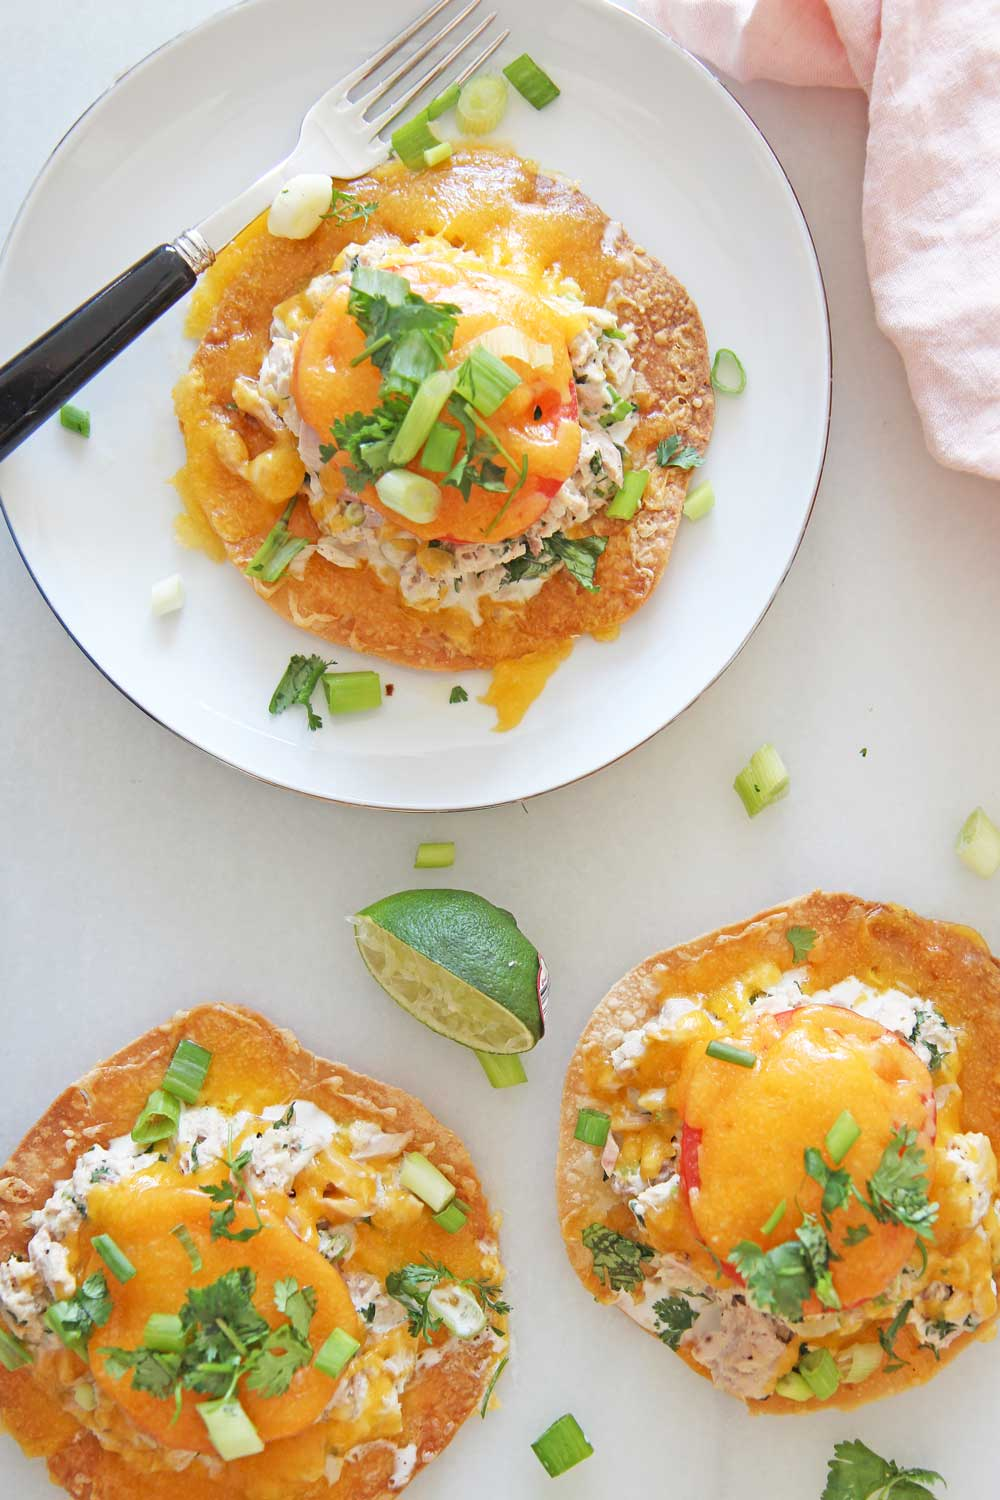 Tuna Melt Tostadas are so easy to make and are the perfect pantry dinner. Grab tortillas, tuna, mayo, cilantro, scallions, cheese, and lime. Happy Dinner cooking! www.ChopHappy.com #tostada #tunamelt